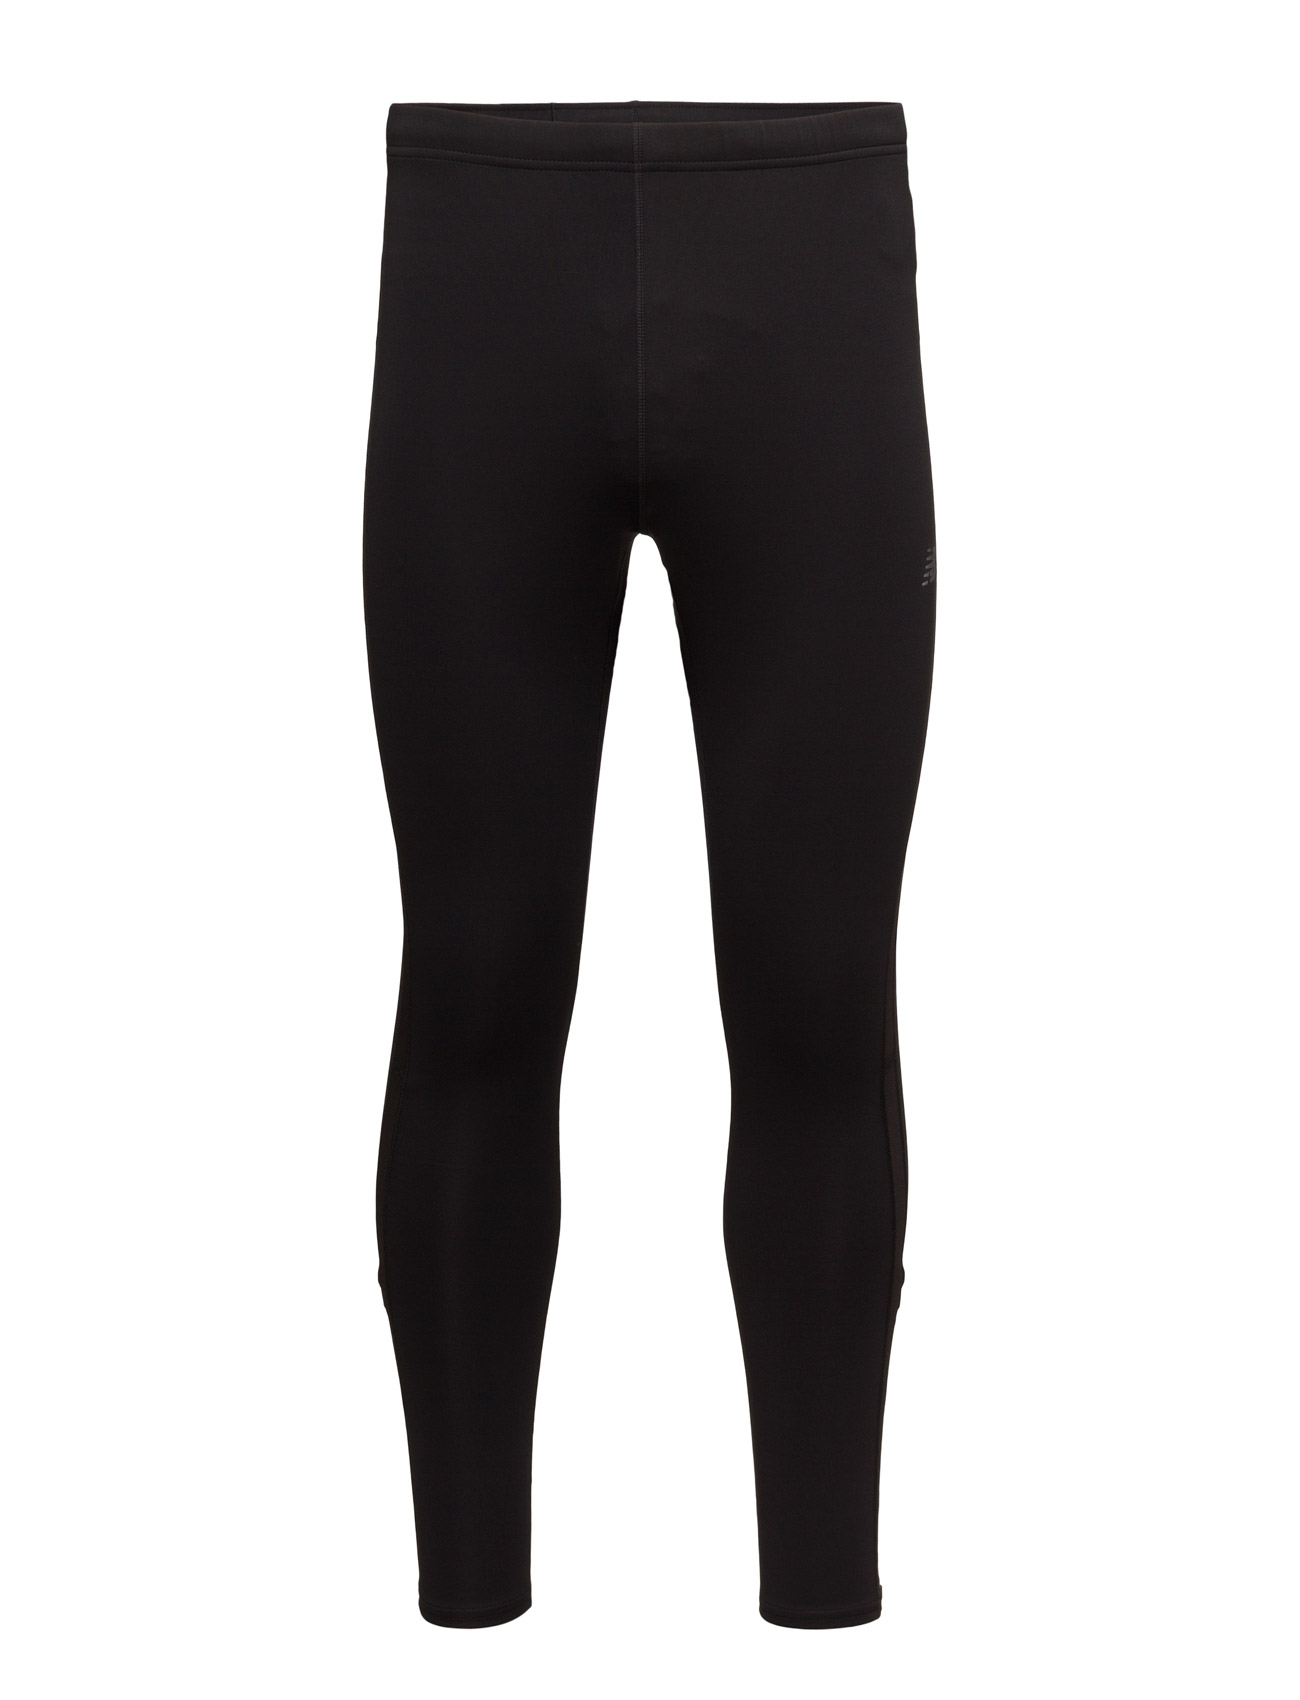 Accelerate Tight New Balance Løbe tights til Mænd i